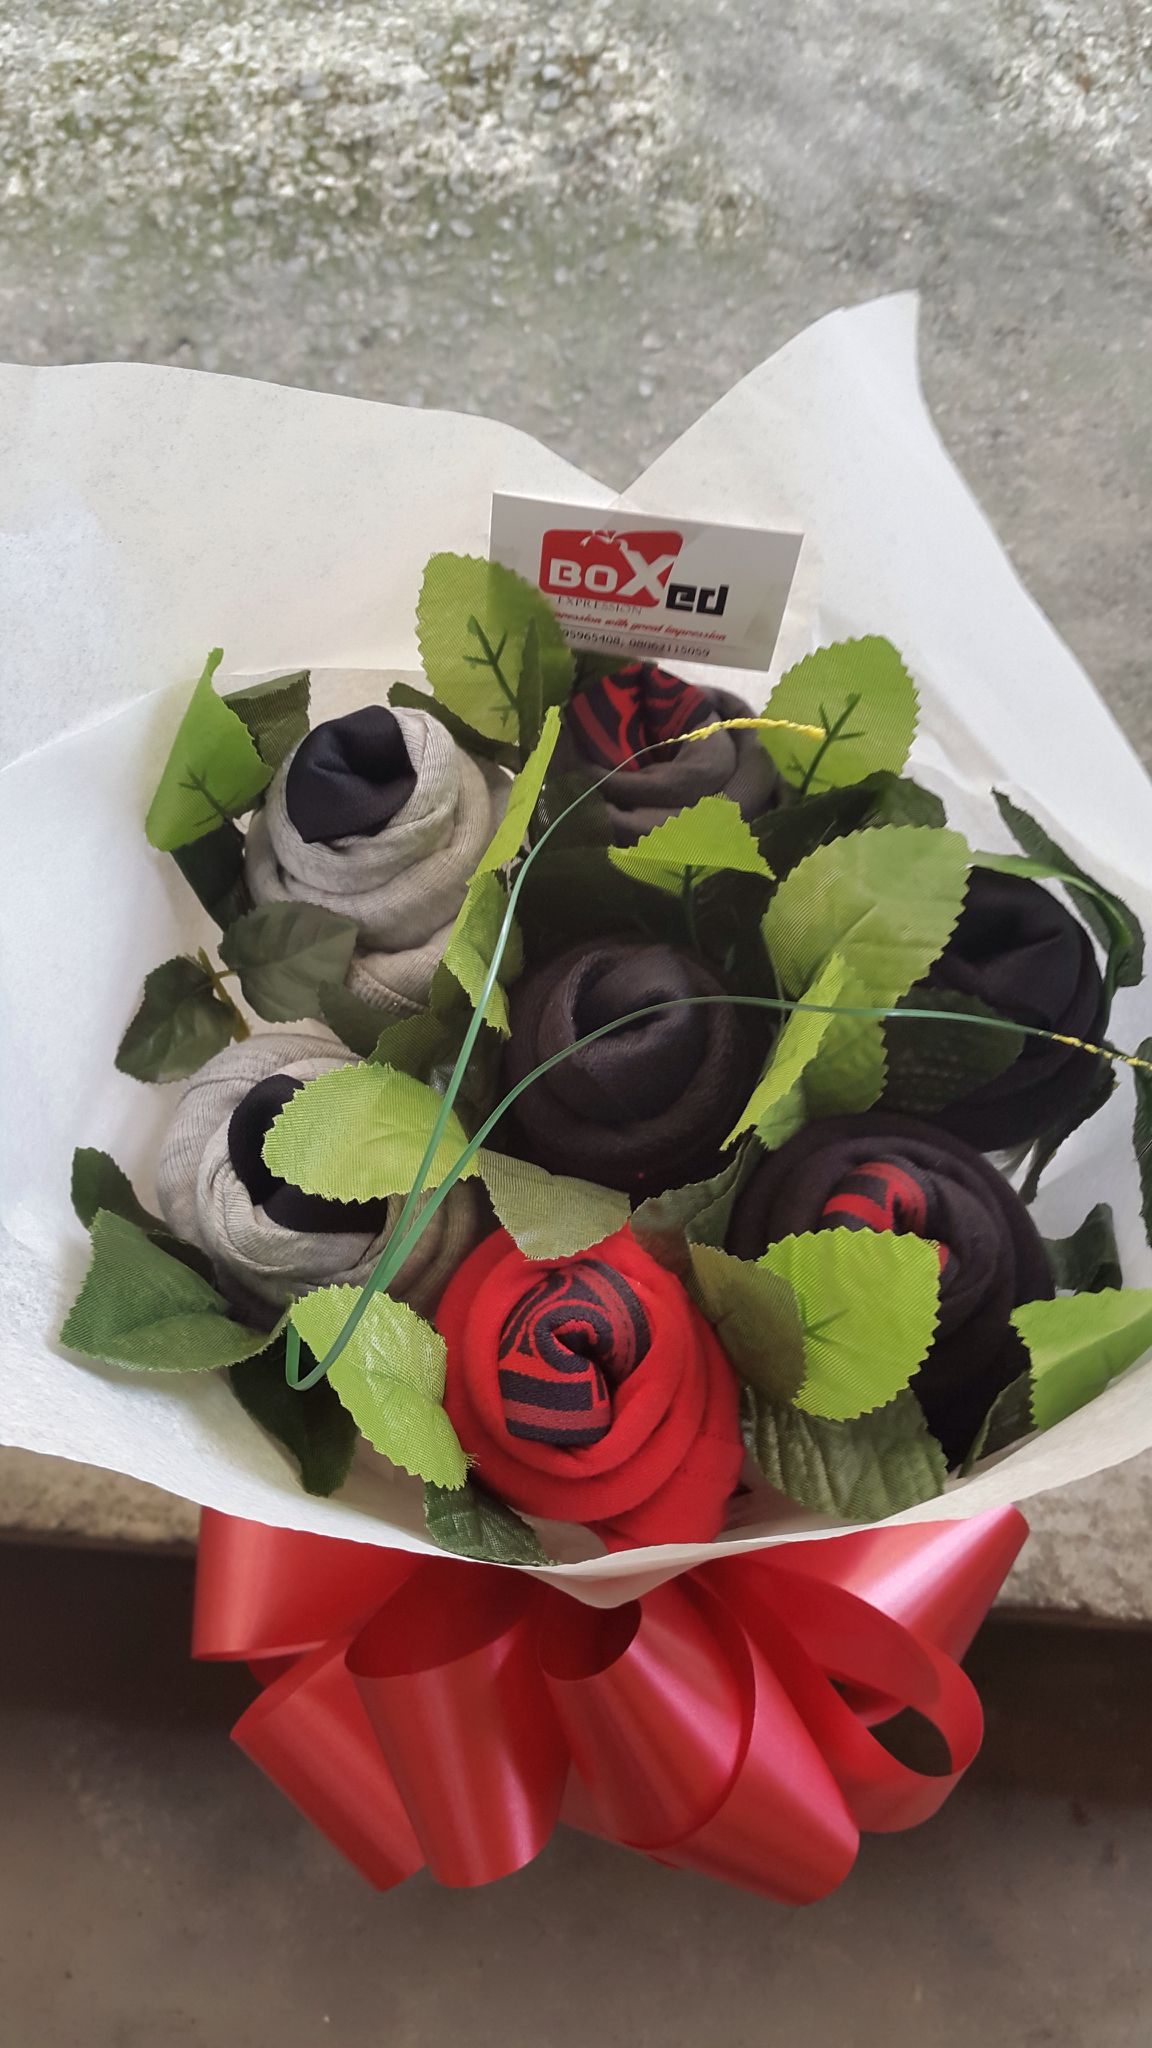 How to make a bouquet of socks with your own hands